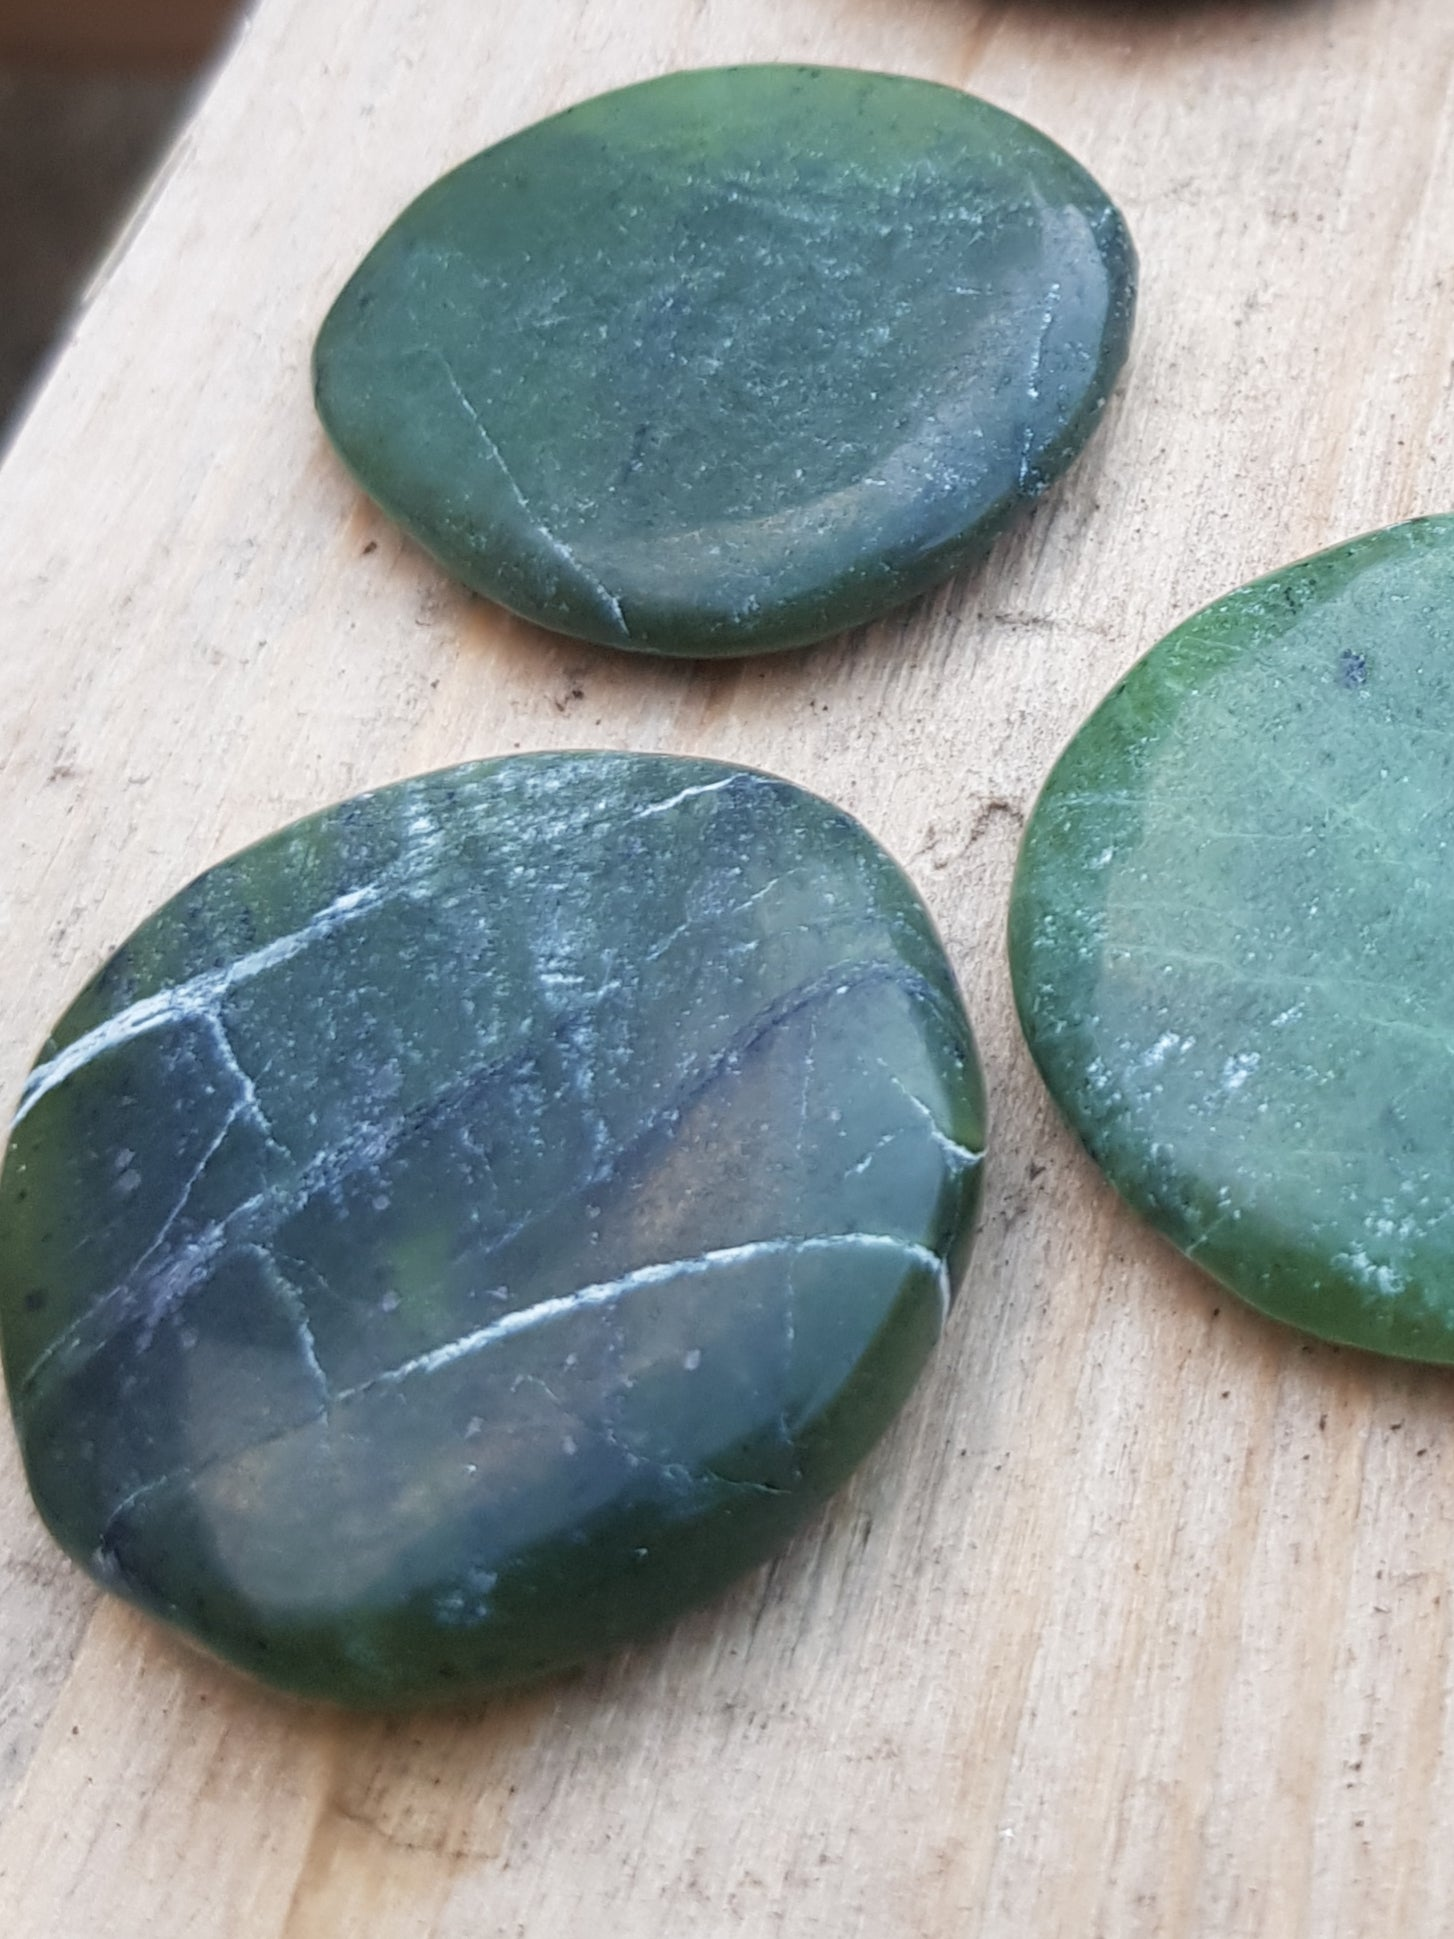 nephrite jade palmstone. dark green with some white lineations.